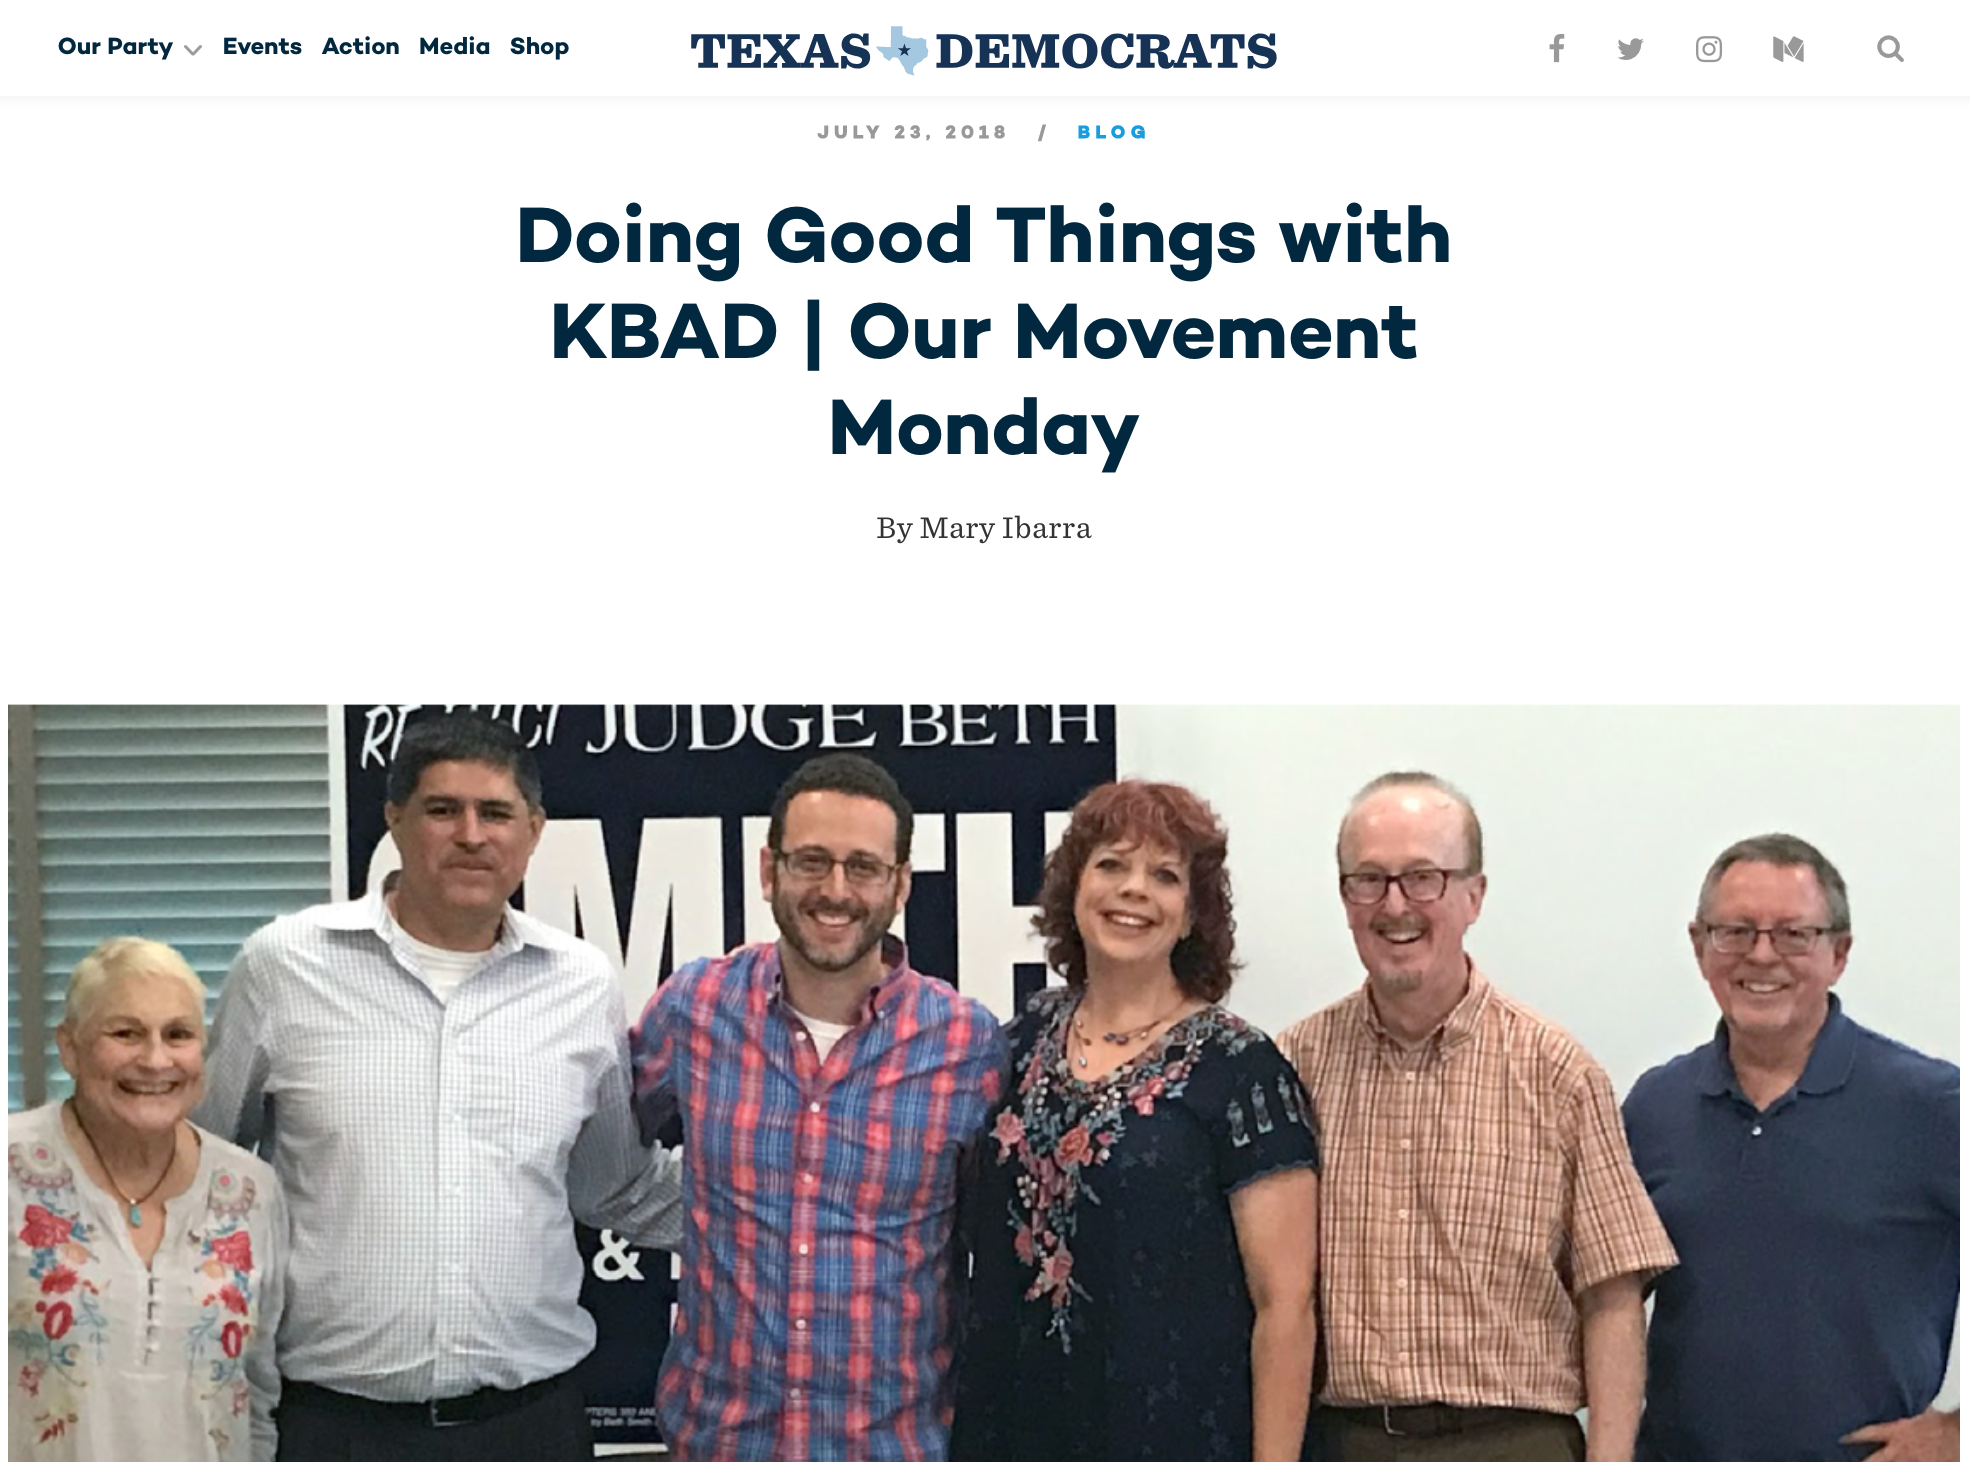 Screen capture of Texas Democrats Press Article